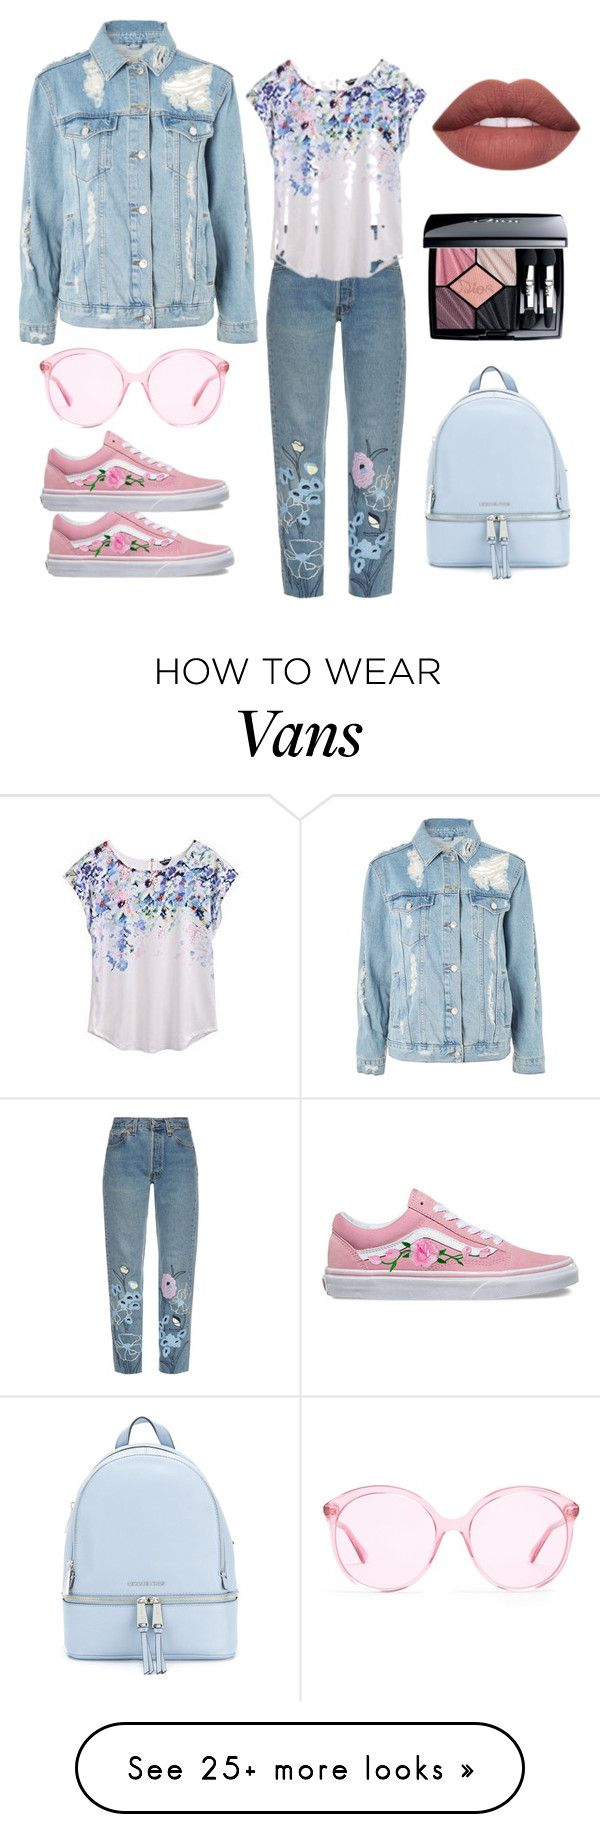 """Untitled #2665"" by twil24 on Polyvore featuring Bliss and Mischief, Topshop, Vans, MICHAEL Michael Kors, Gucci and Christian Dior"